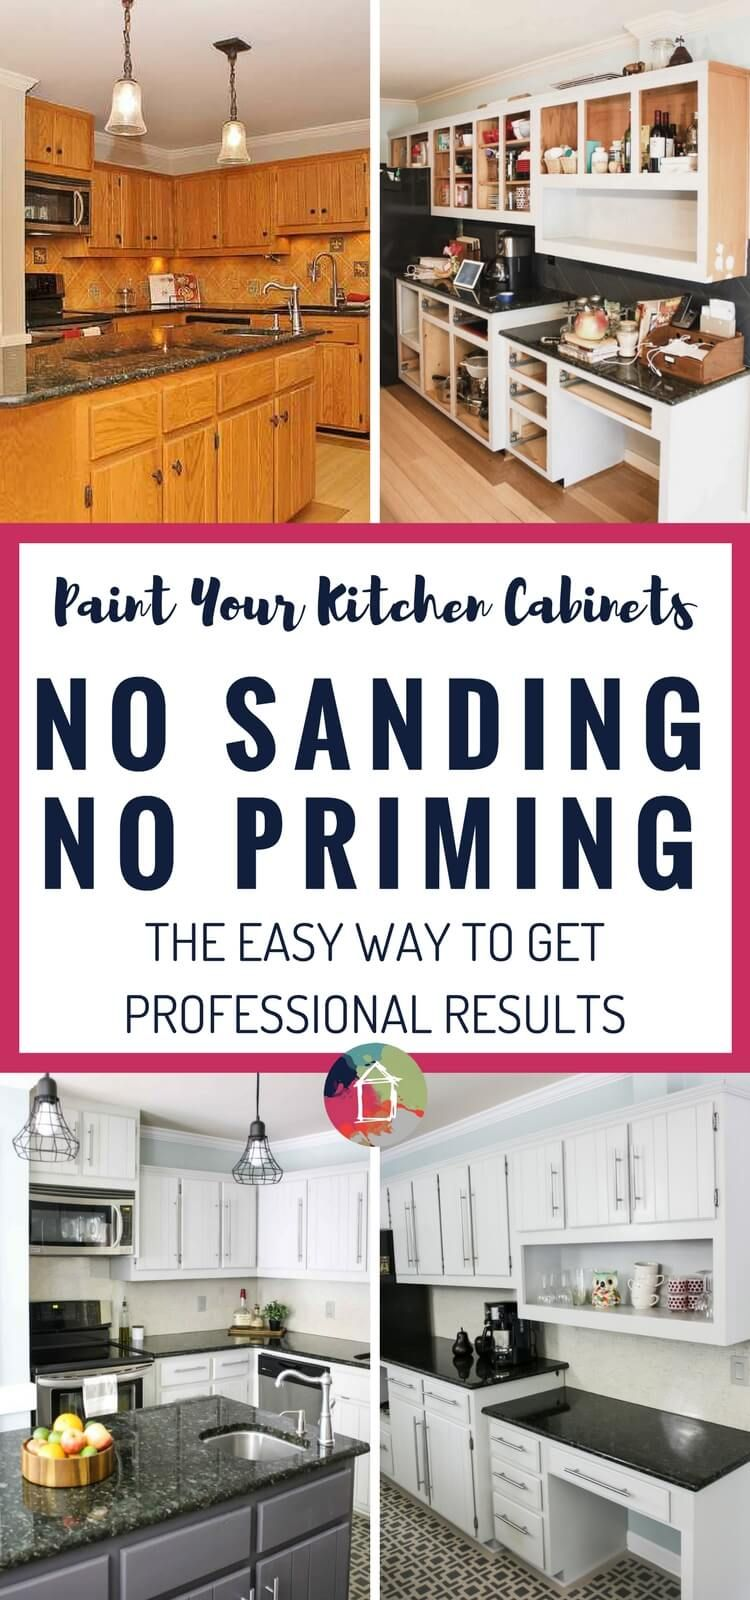 How To Paint Kitchen Cabinets: No Painting/Sanding